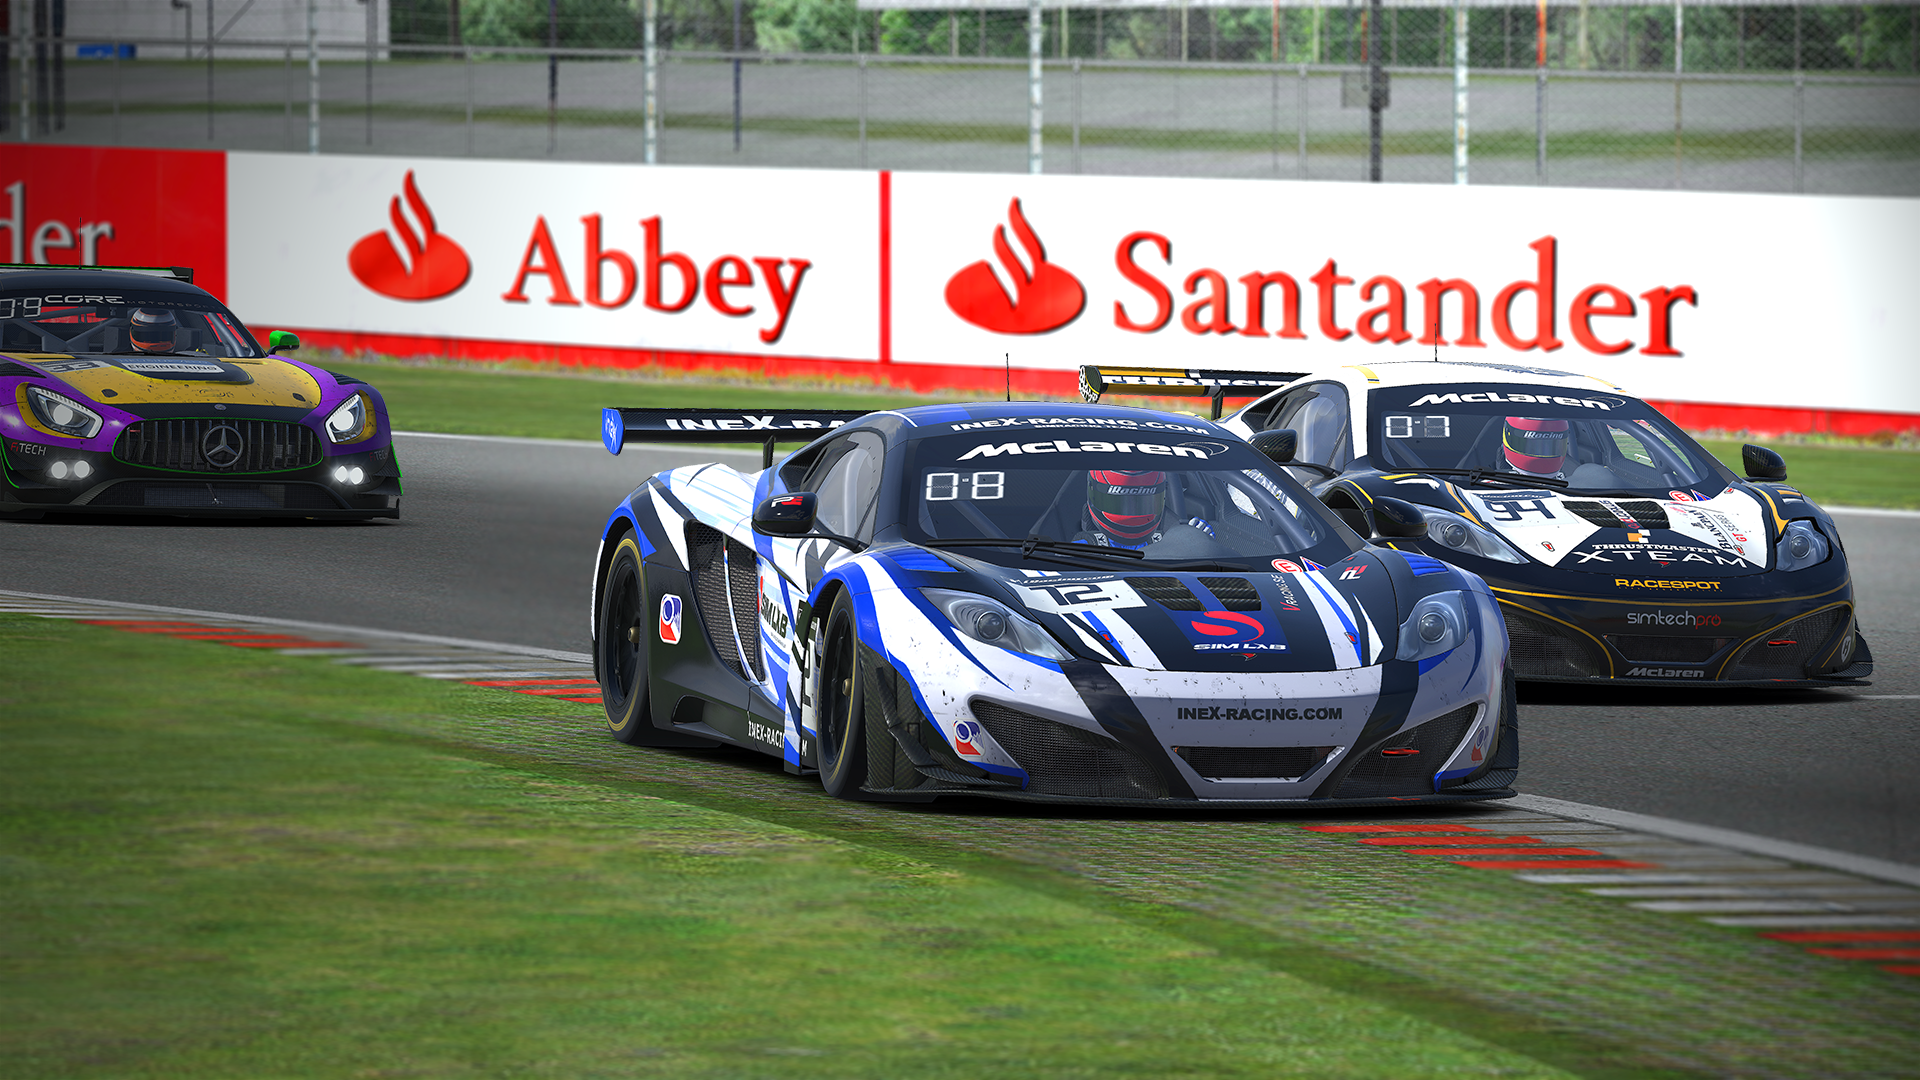 ineX Racing Blue finishes second overall in the 2017 iRacing Blancpain GT Championship